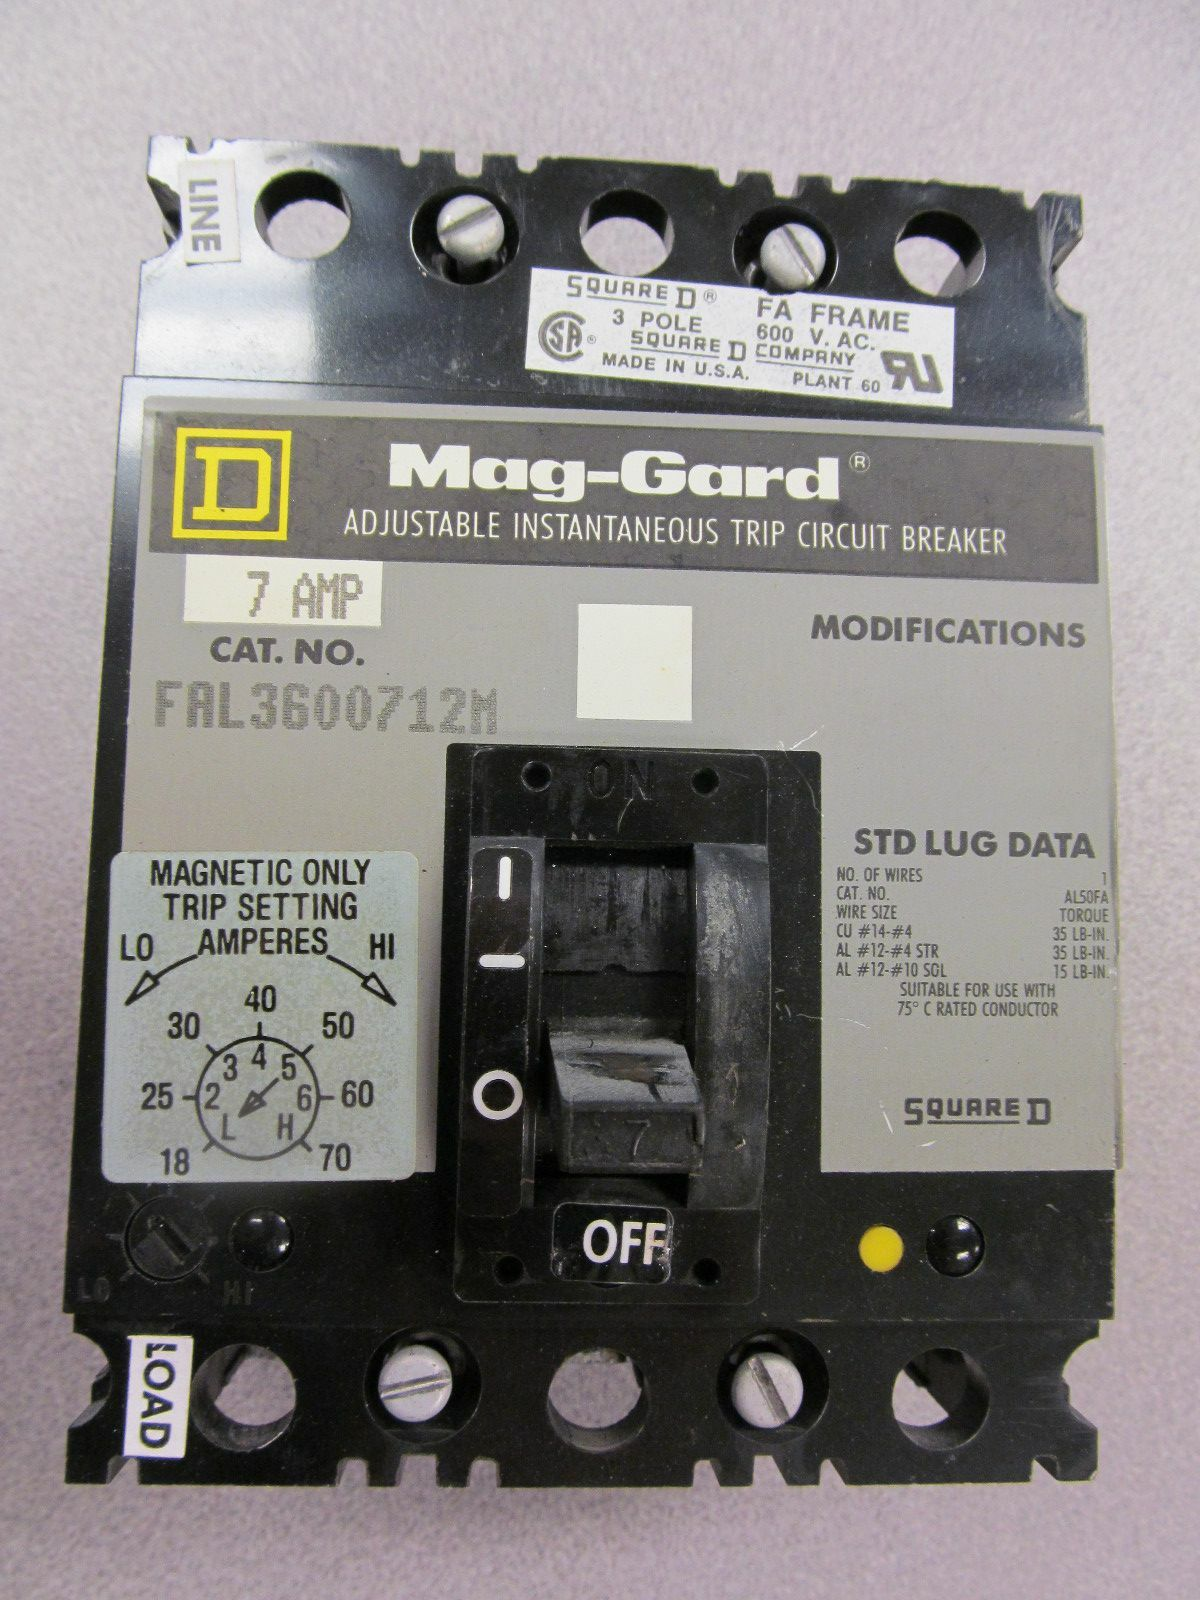 Square d fal3600712m circuit breaker 7 amp 600 v 3 pole ebay greentooth Image collections